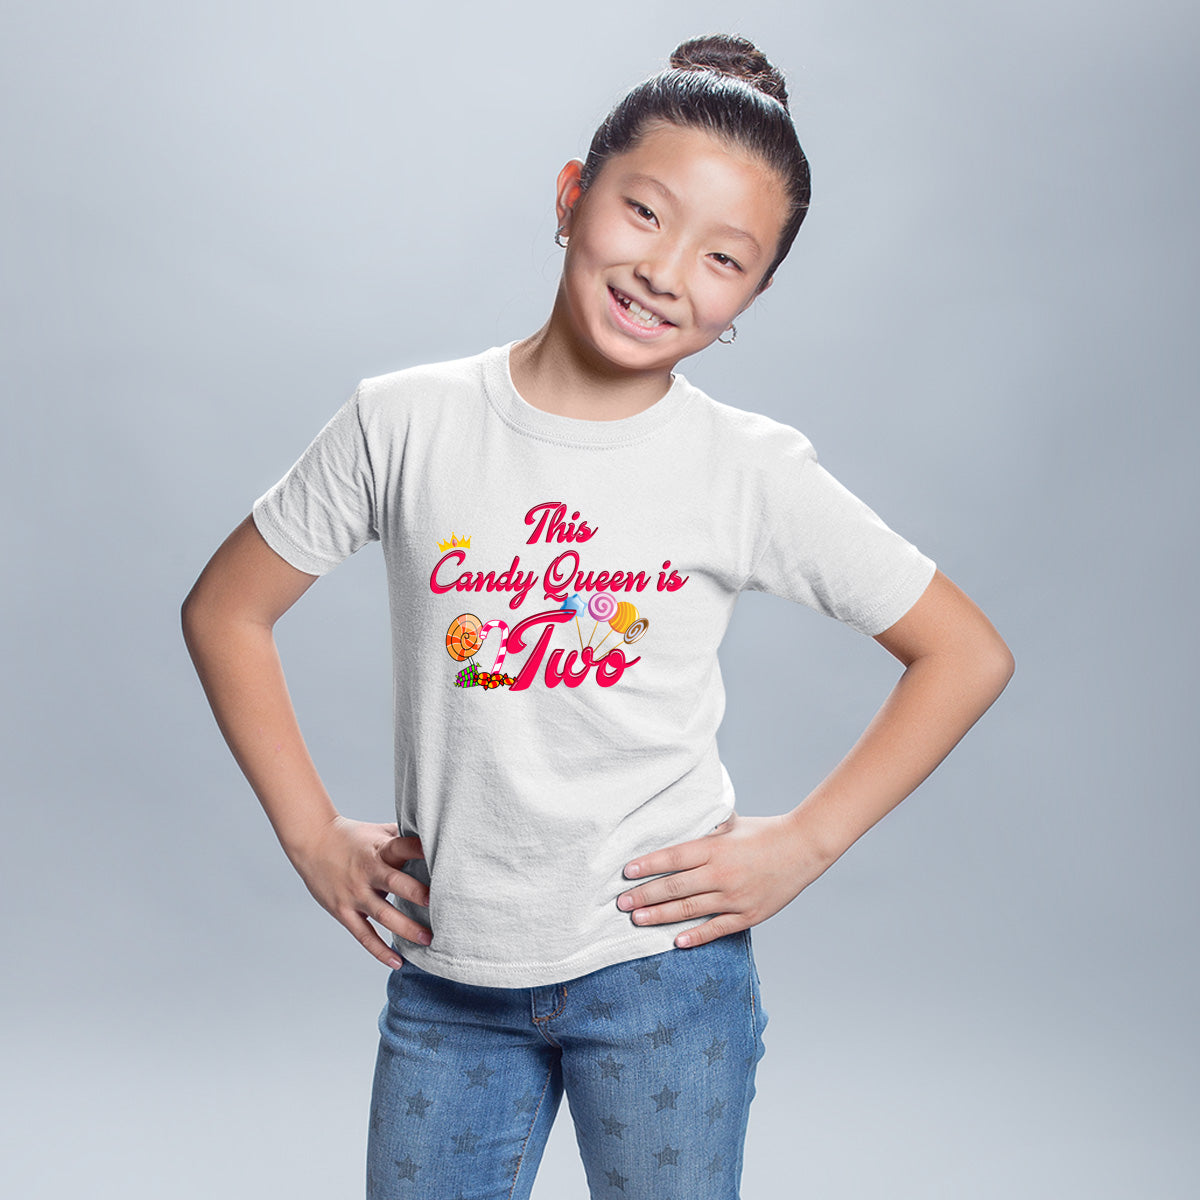 Sprinklecart This Candy Queen is Two Printed Birthday T Shirt | Customized Birthday Wear